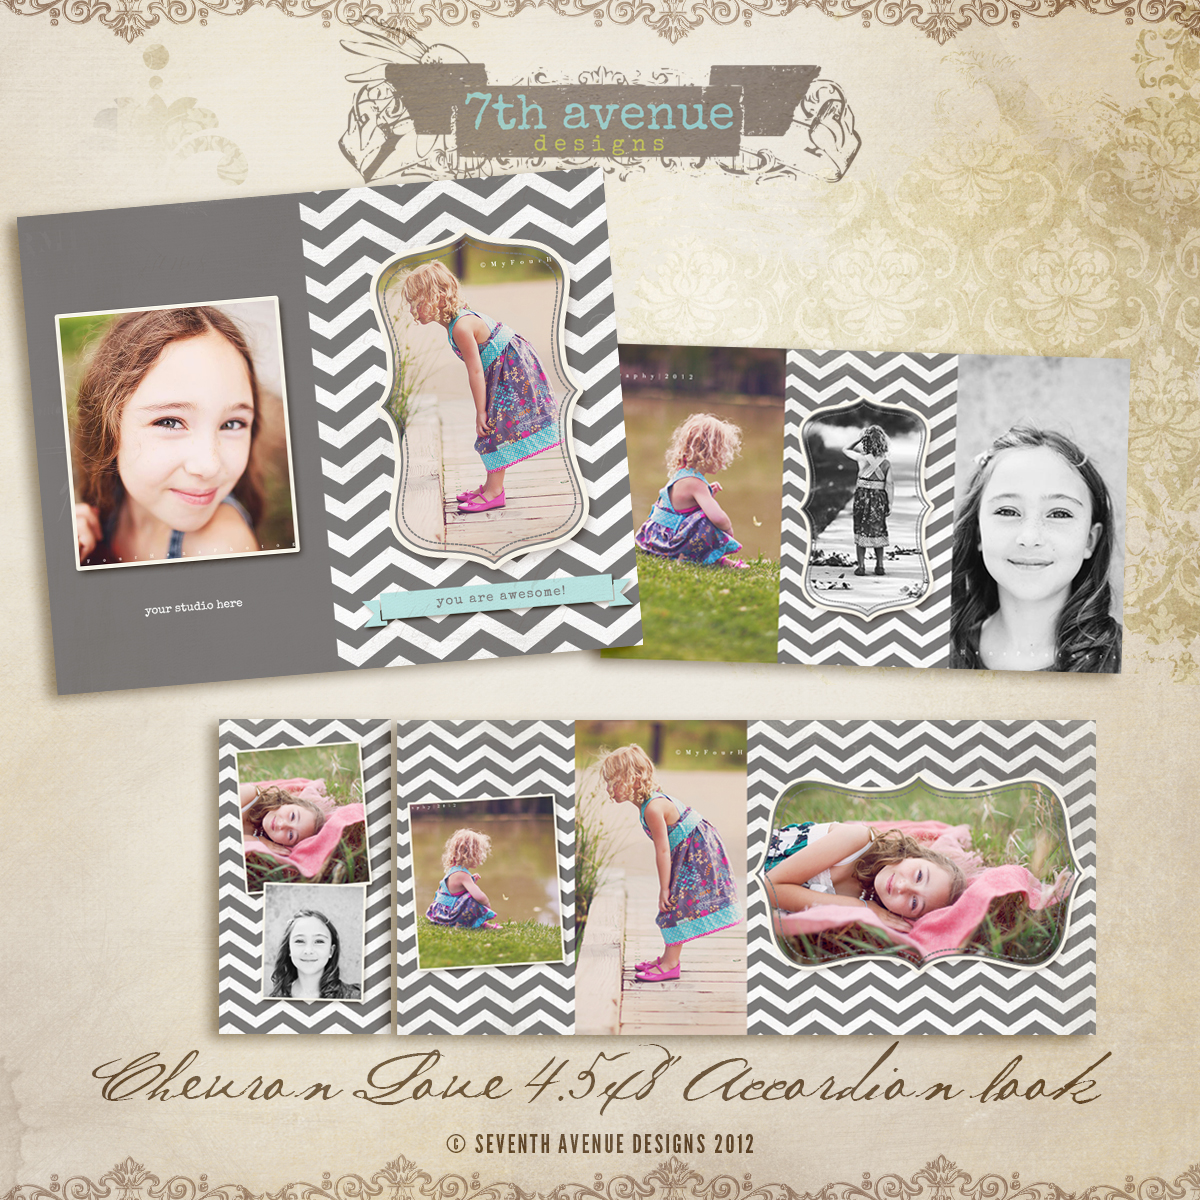 Chevron Love 4.5x8 Accordion book templates